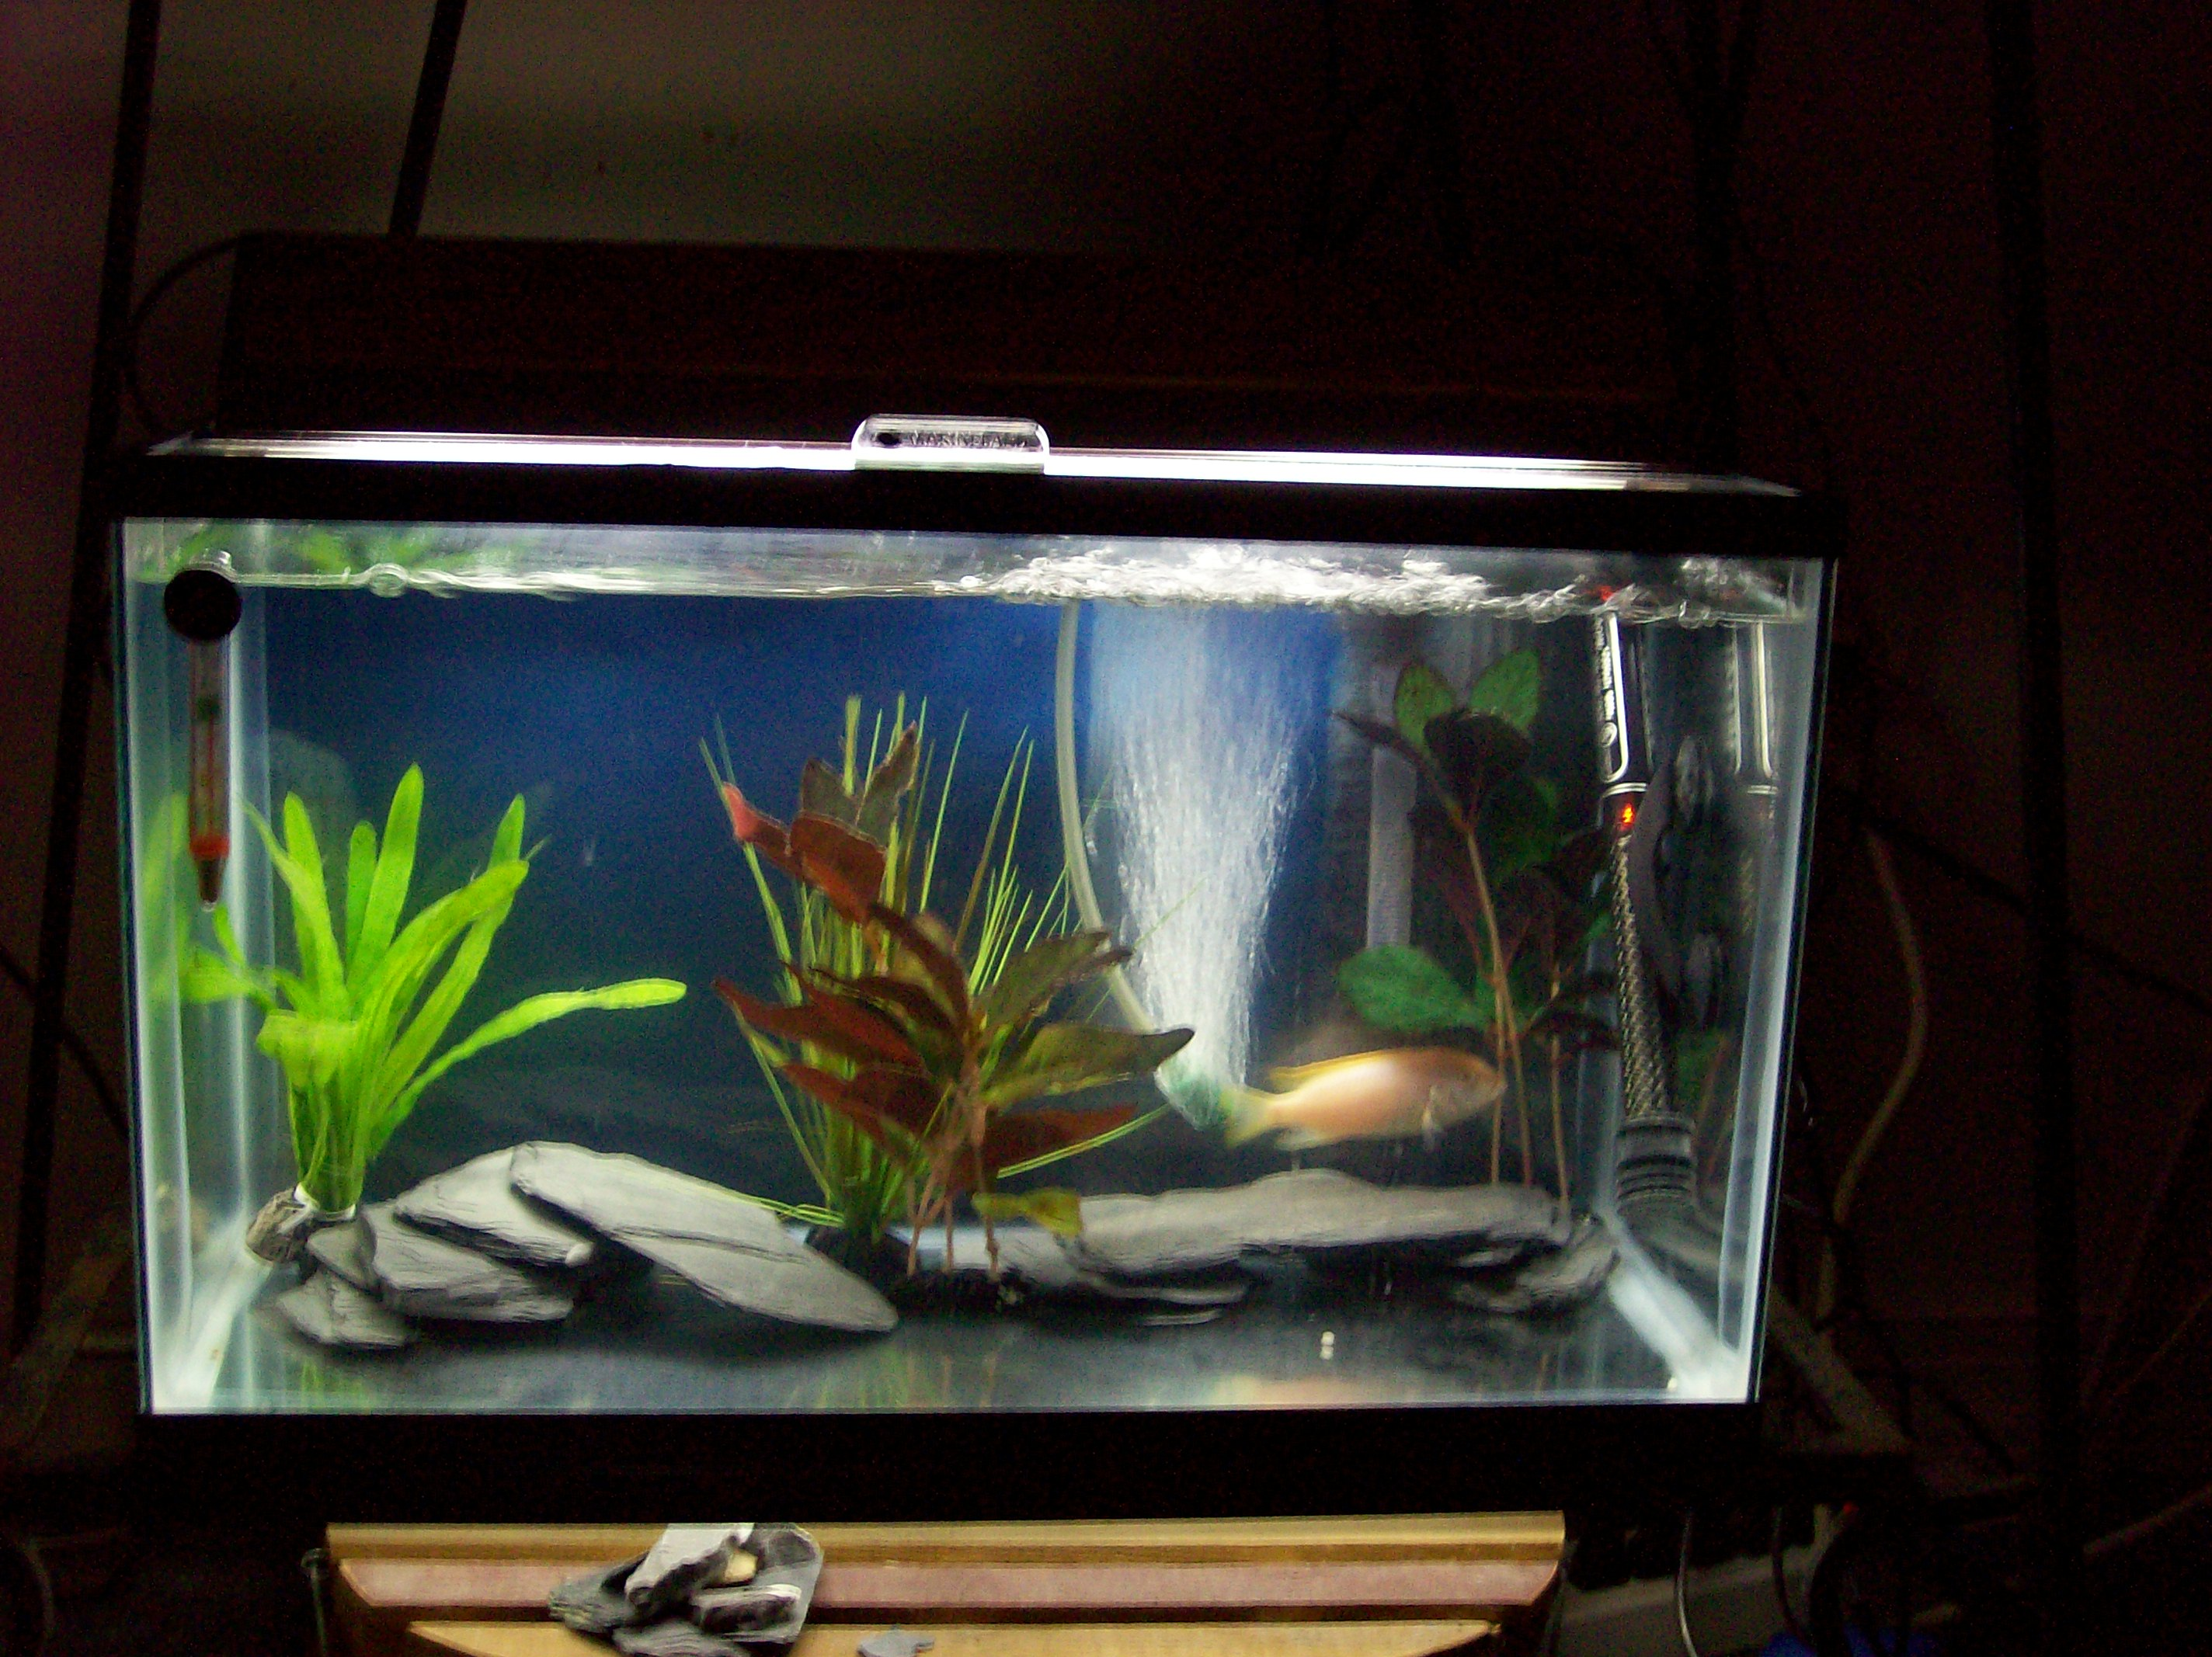 10 gallon fish tank in litres - 10 Gallon Tank: My 32 ... 10 Gallon Home Aquariums